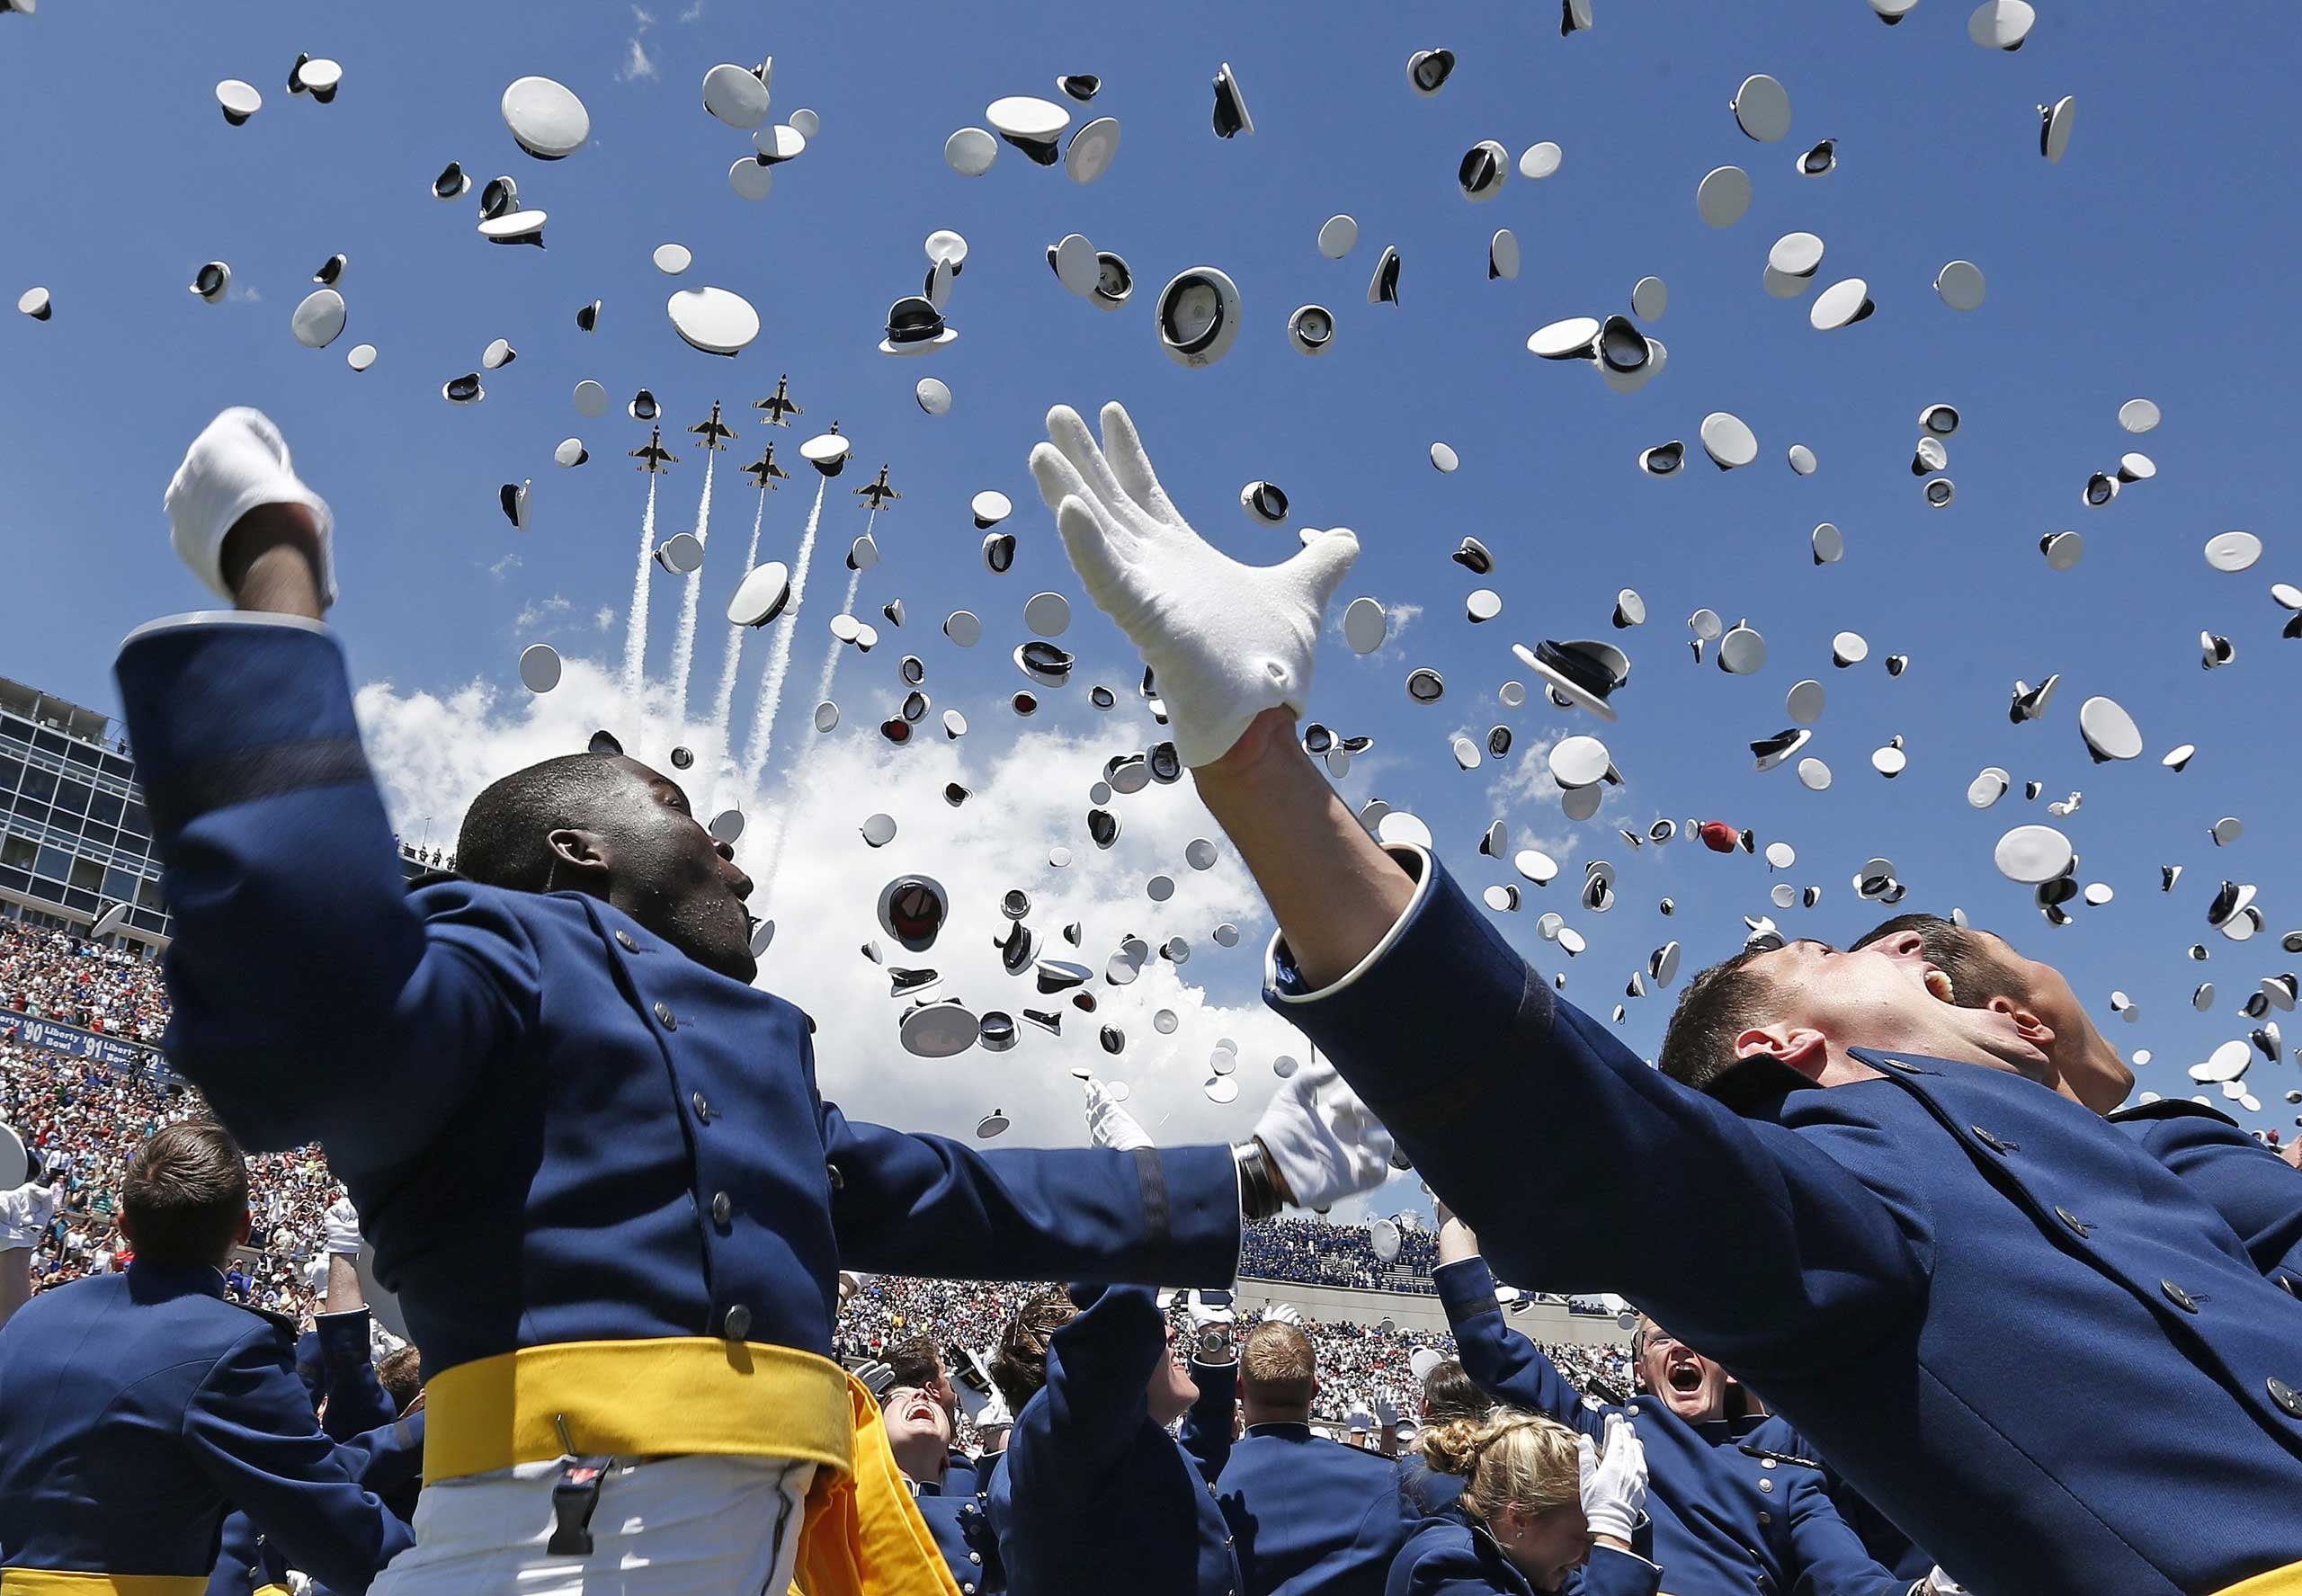 Air Force Academy graduates throw their caps into the air at the completion of the graduation ceremony for the class of 2014, at the U.S. Air Force Academy, Colo., May 28, 2014.